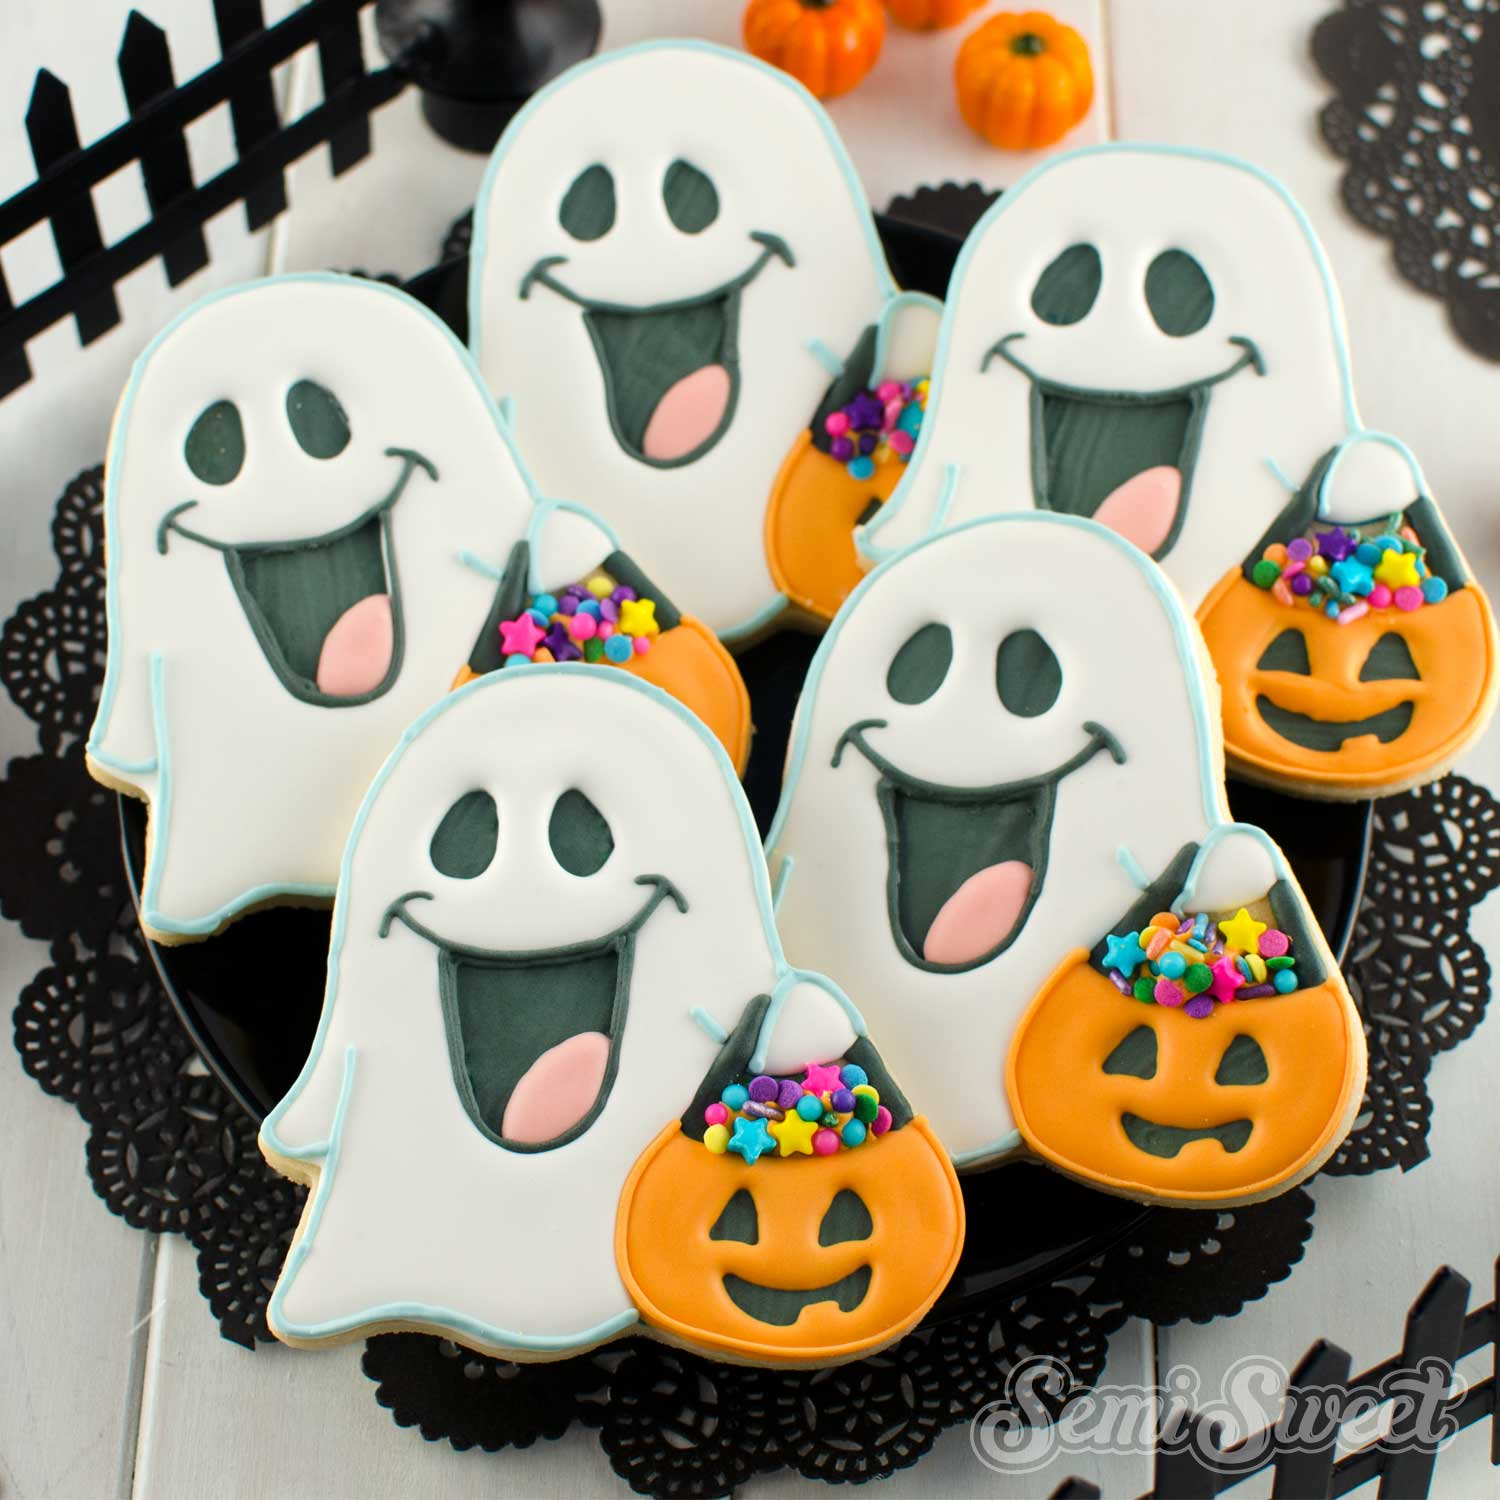 How to Make Trick-or-Treating Ghost Cookies